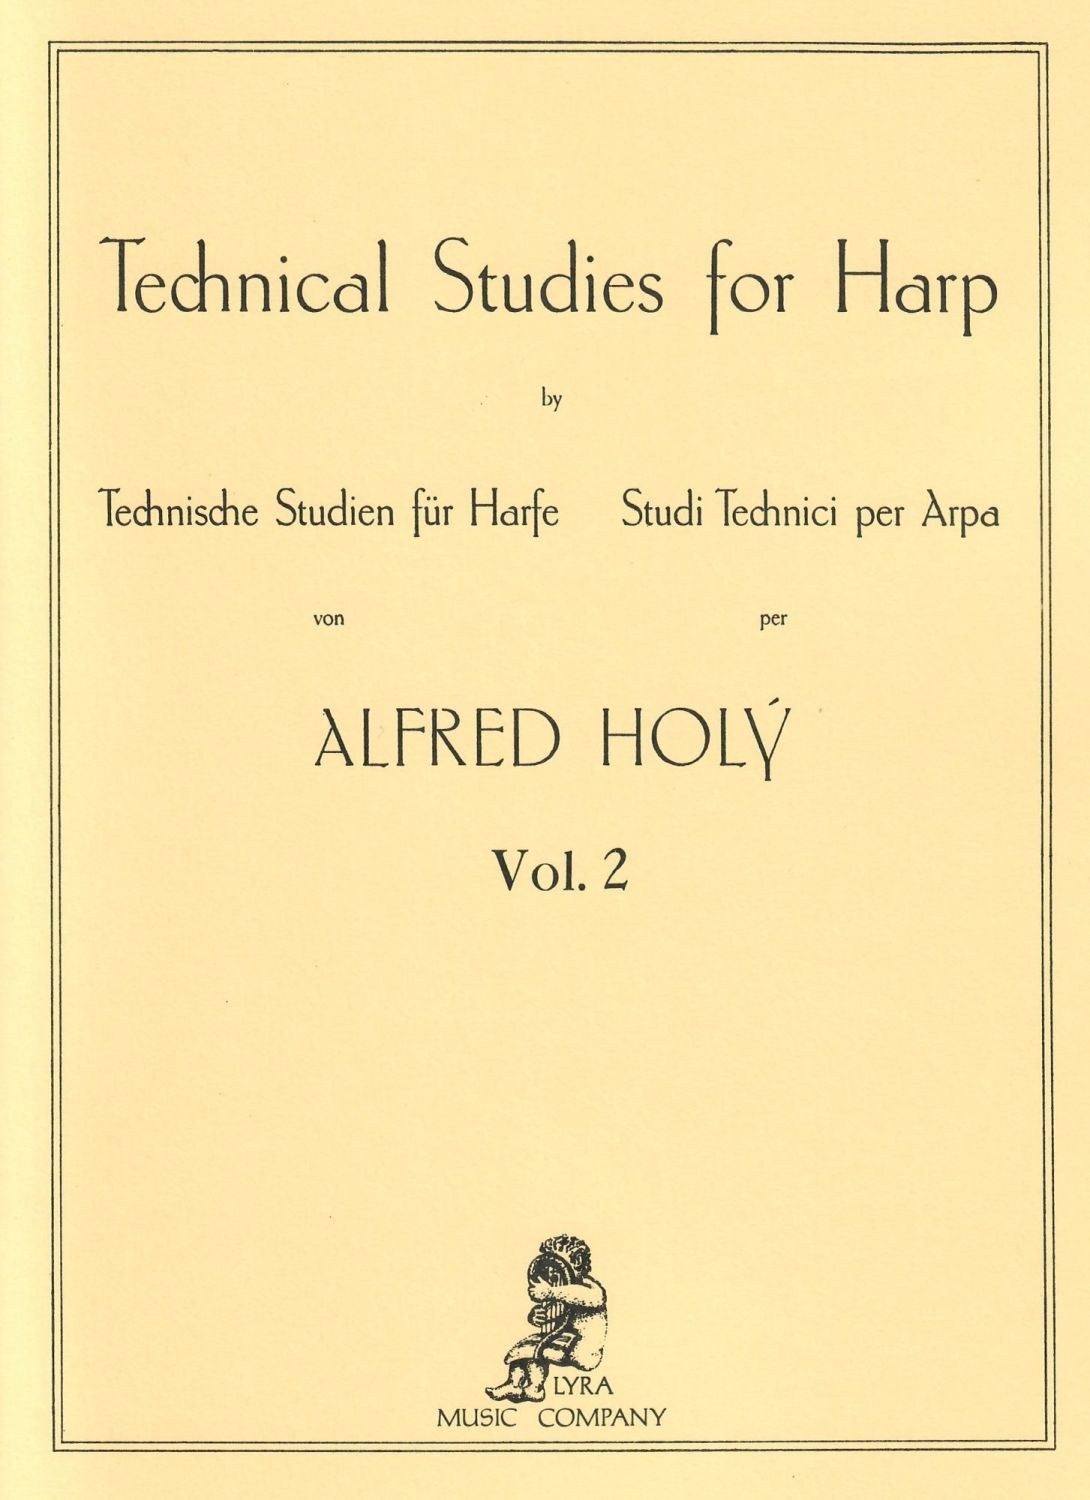 Technical Studies for Harp Vol. 2 by Alfred Holy